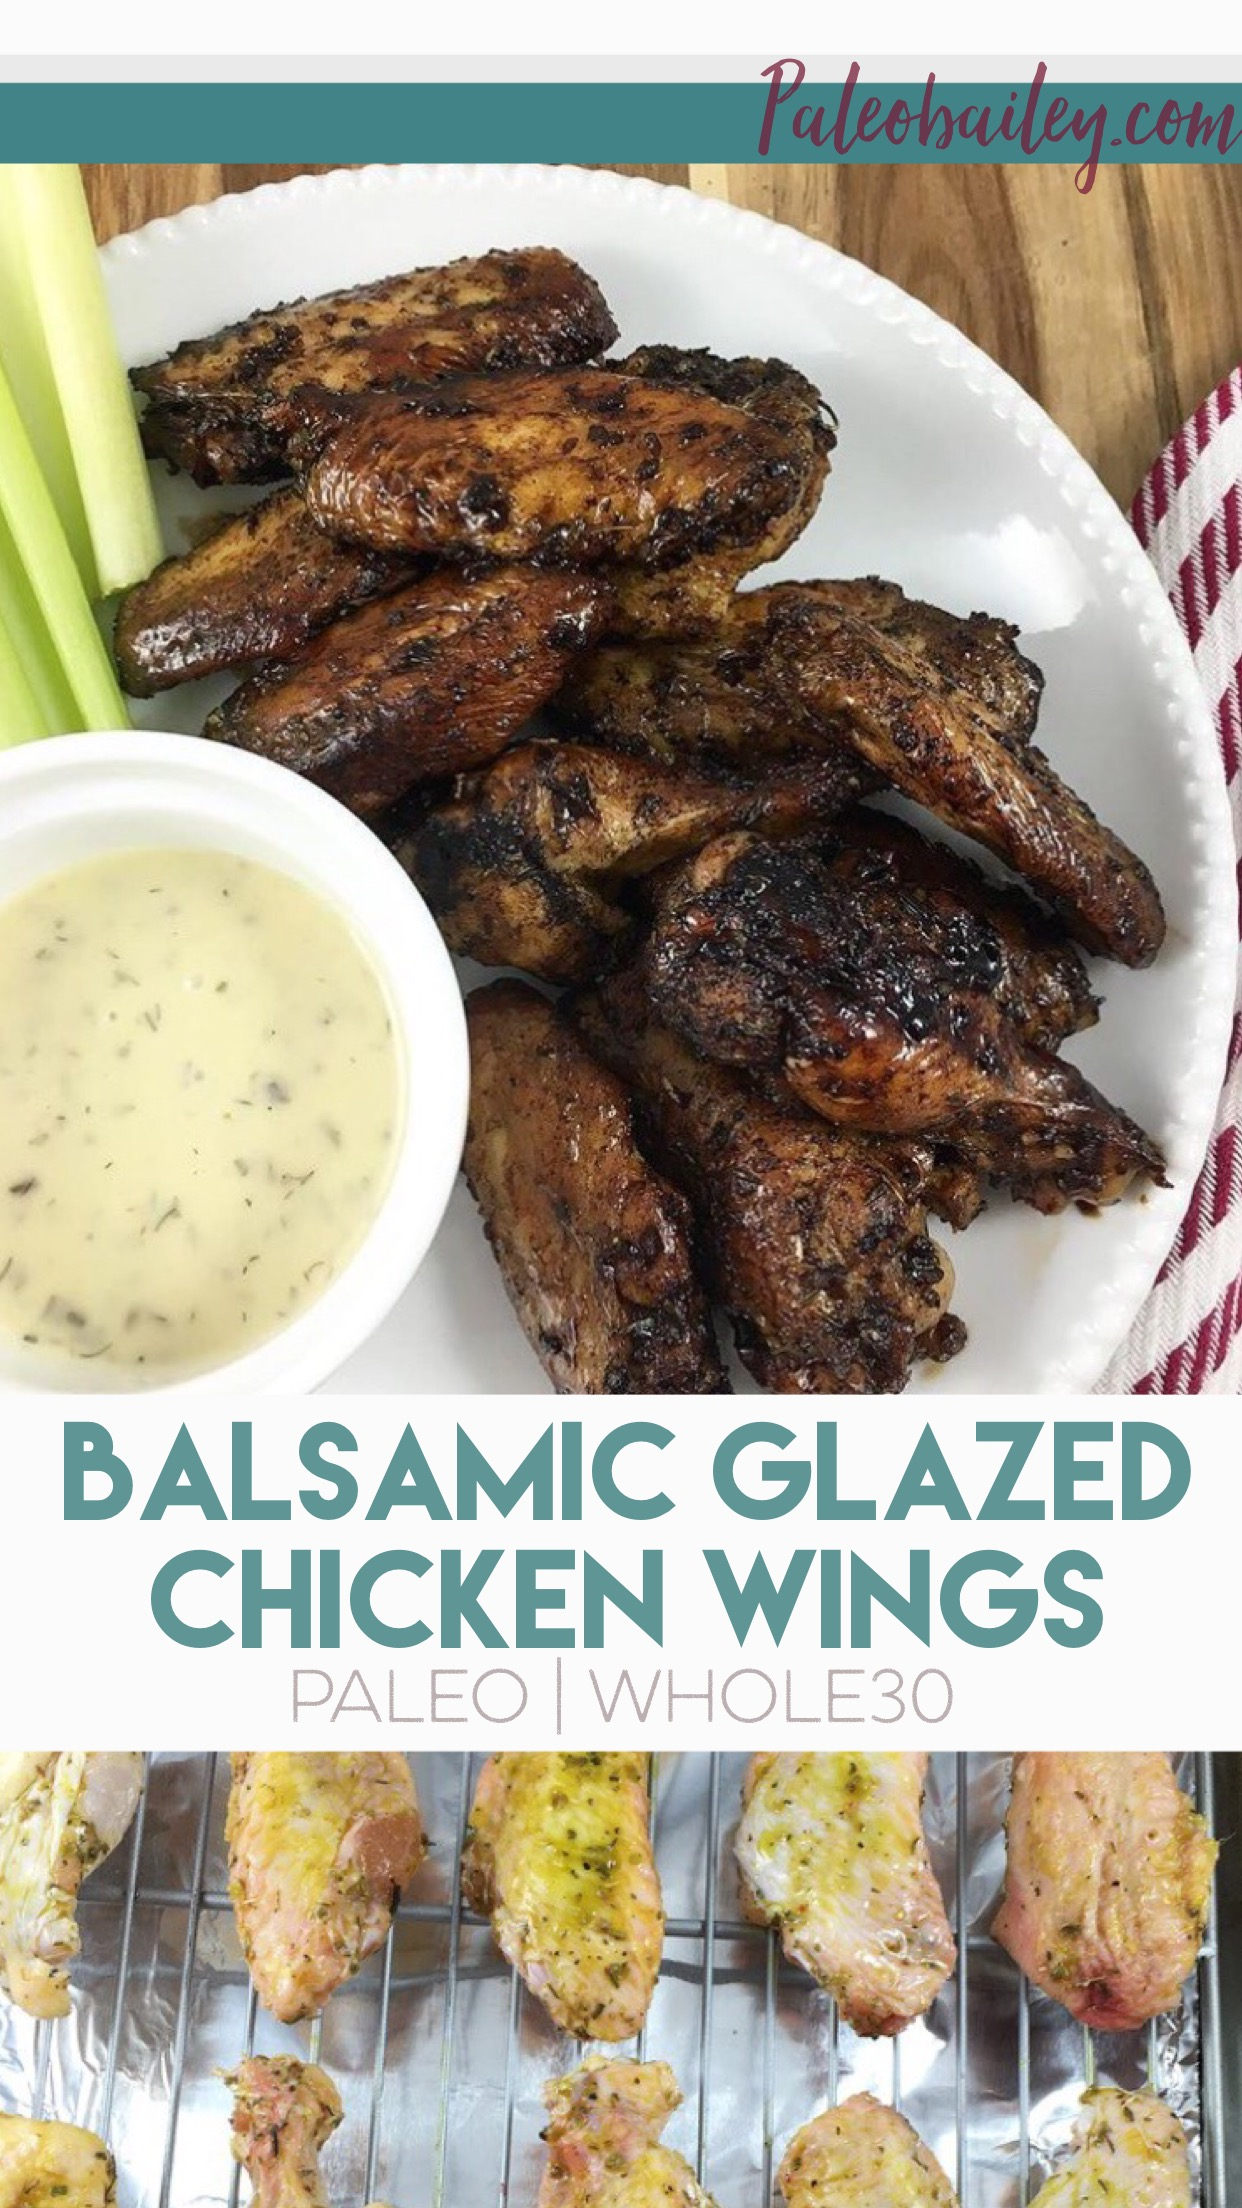 Whole30 and Paleo Balsamic glazed chicken wings with 6 ingredients you already have!